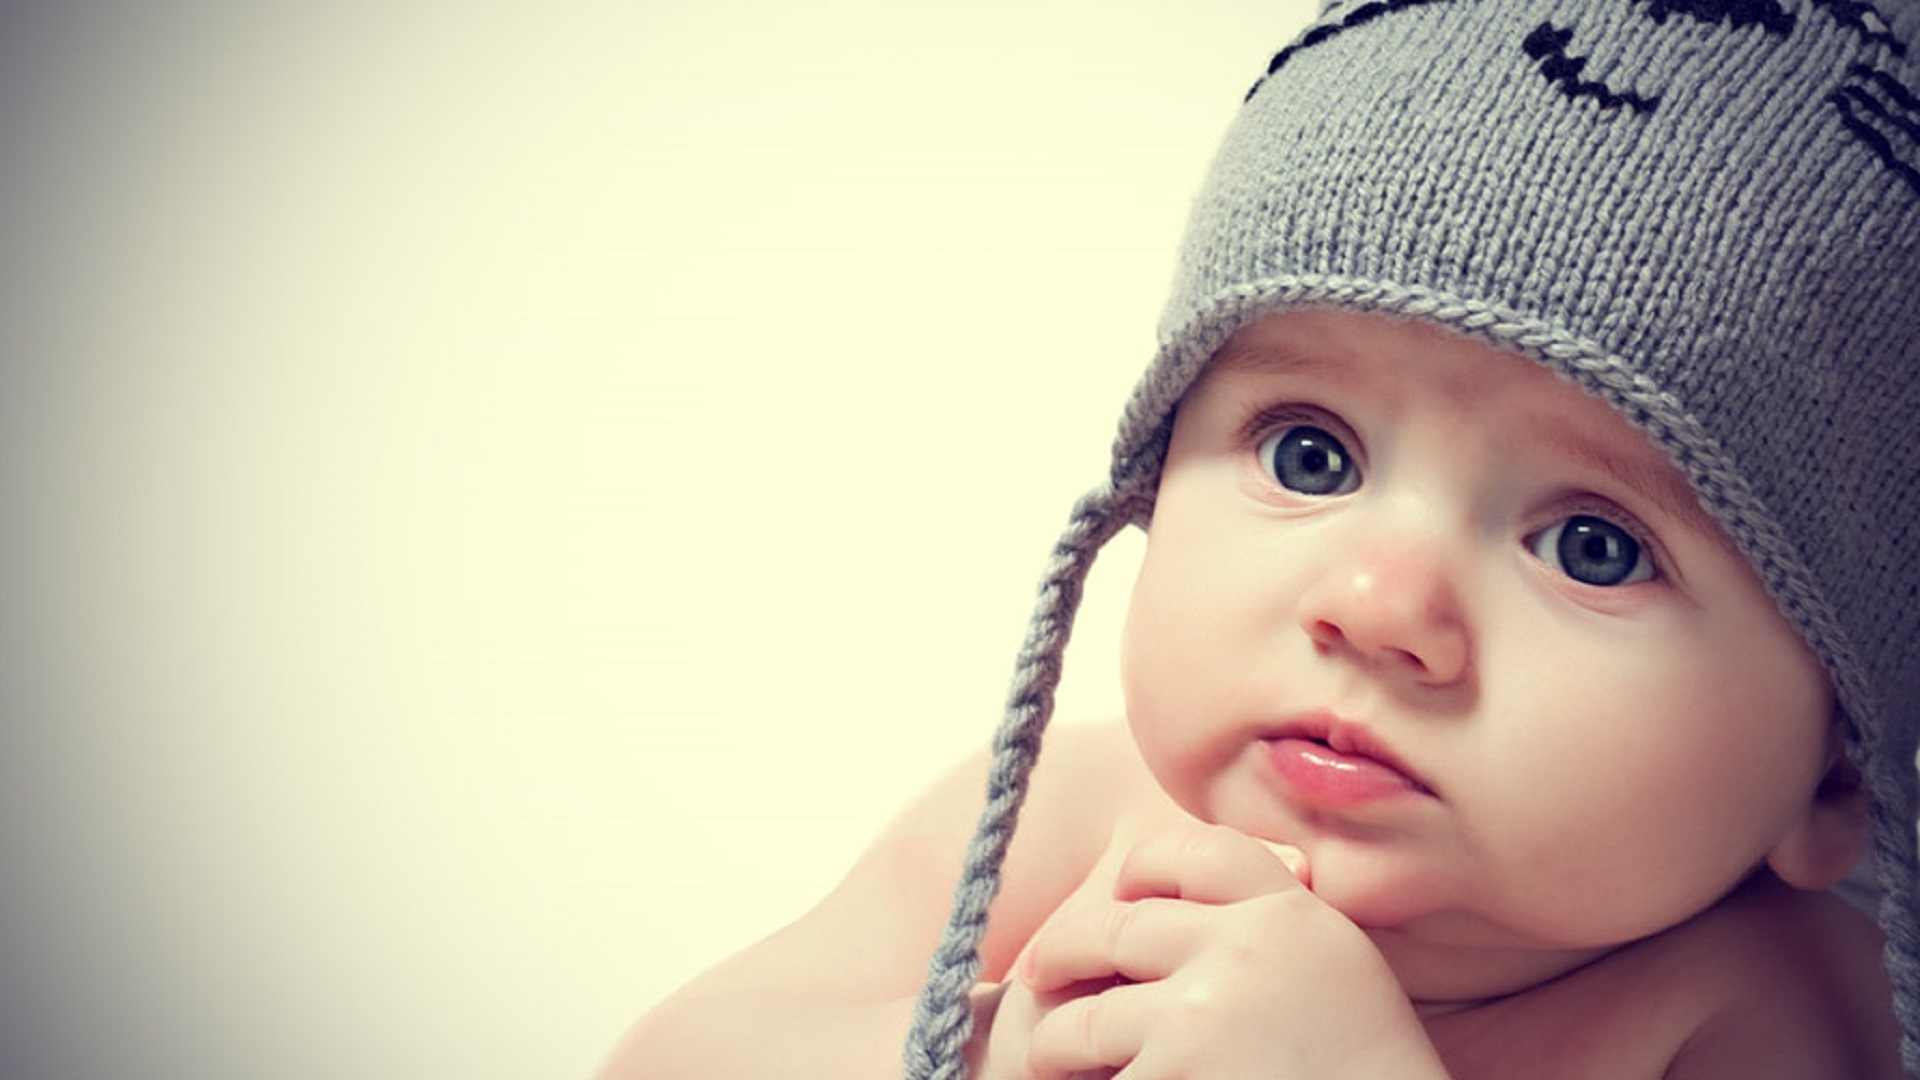 30 Cute Baby Pictures And Wallpapers Style Arena